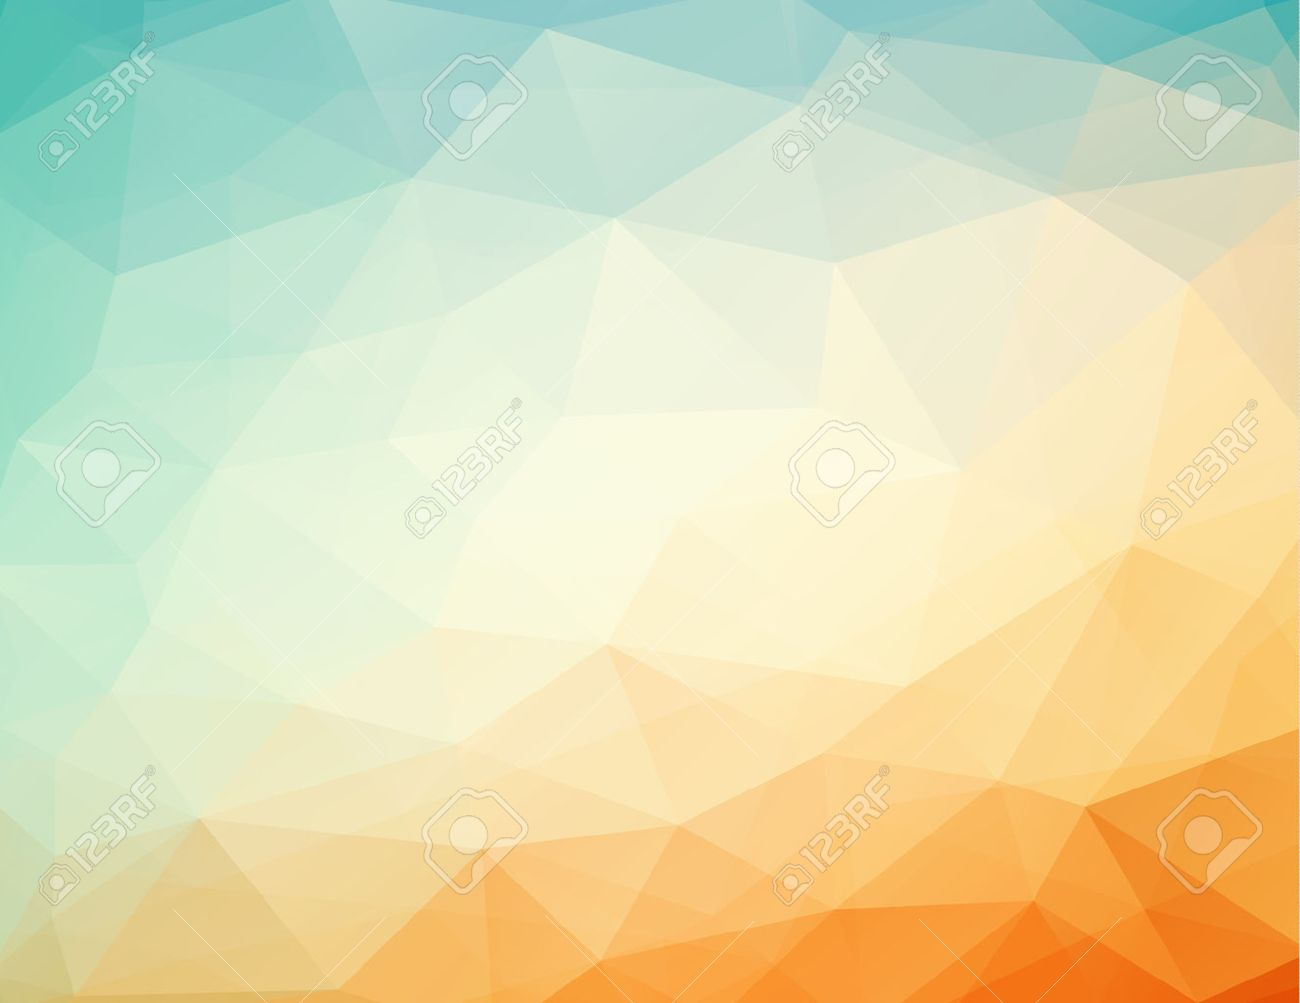 Abstract geometric orange blue background with triangles vector abstract geometric orange blue background with triangles vector illustration eps 10 with transparency altavistaventures Images